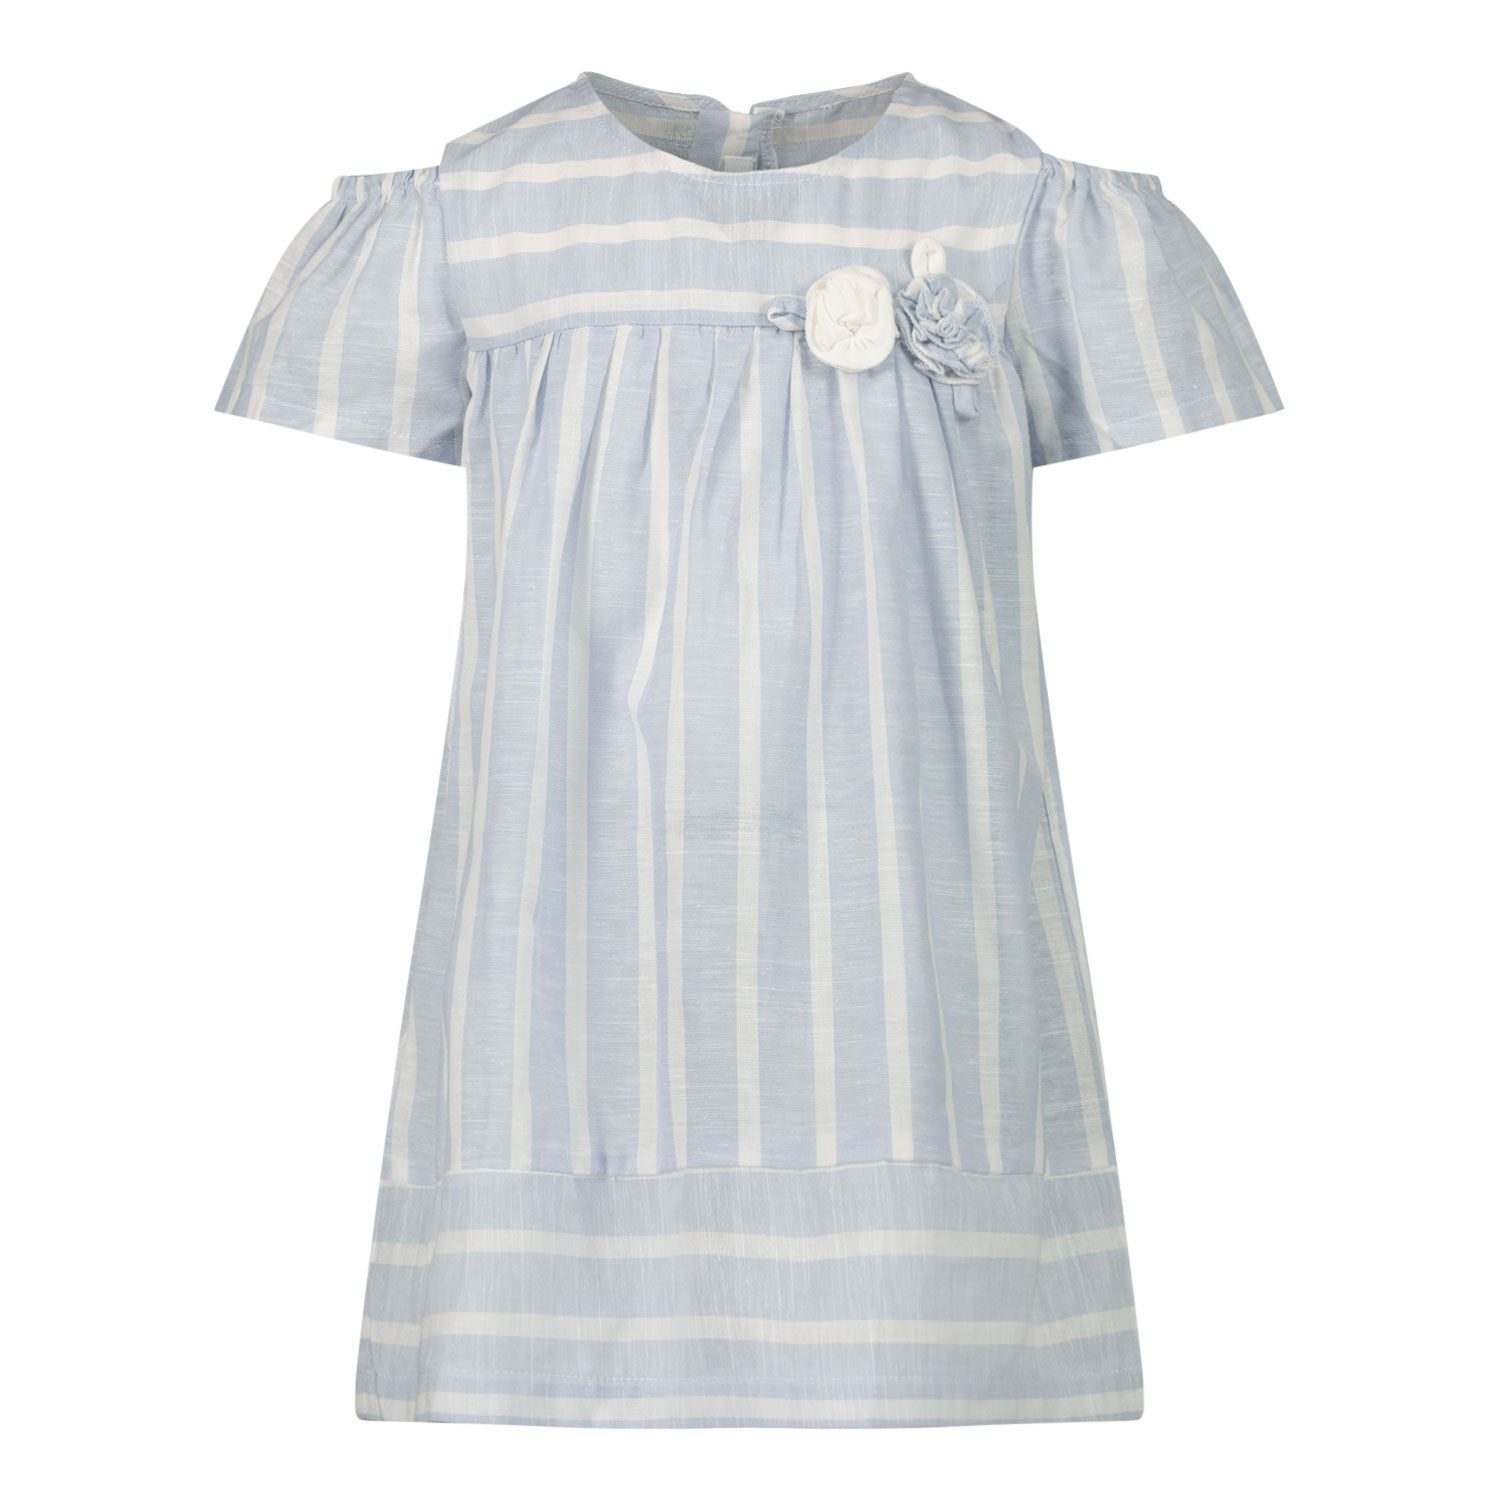 Picture of Mayoral 1980 baby dress light blue